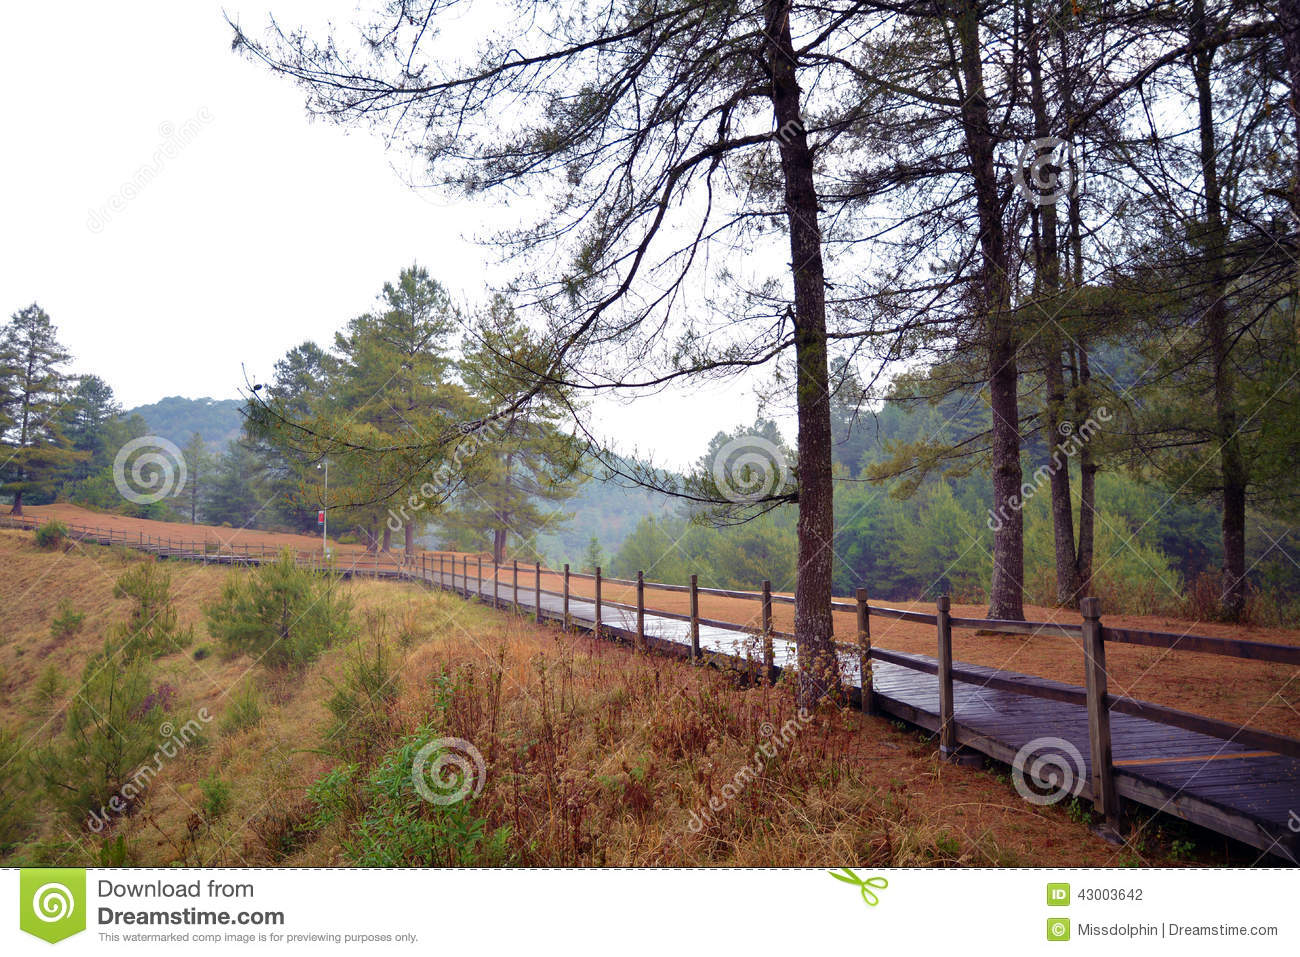 Pine trees and leaves with wet path